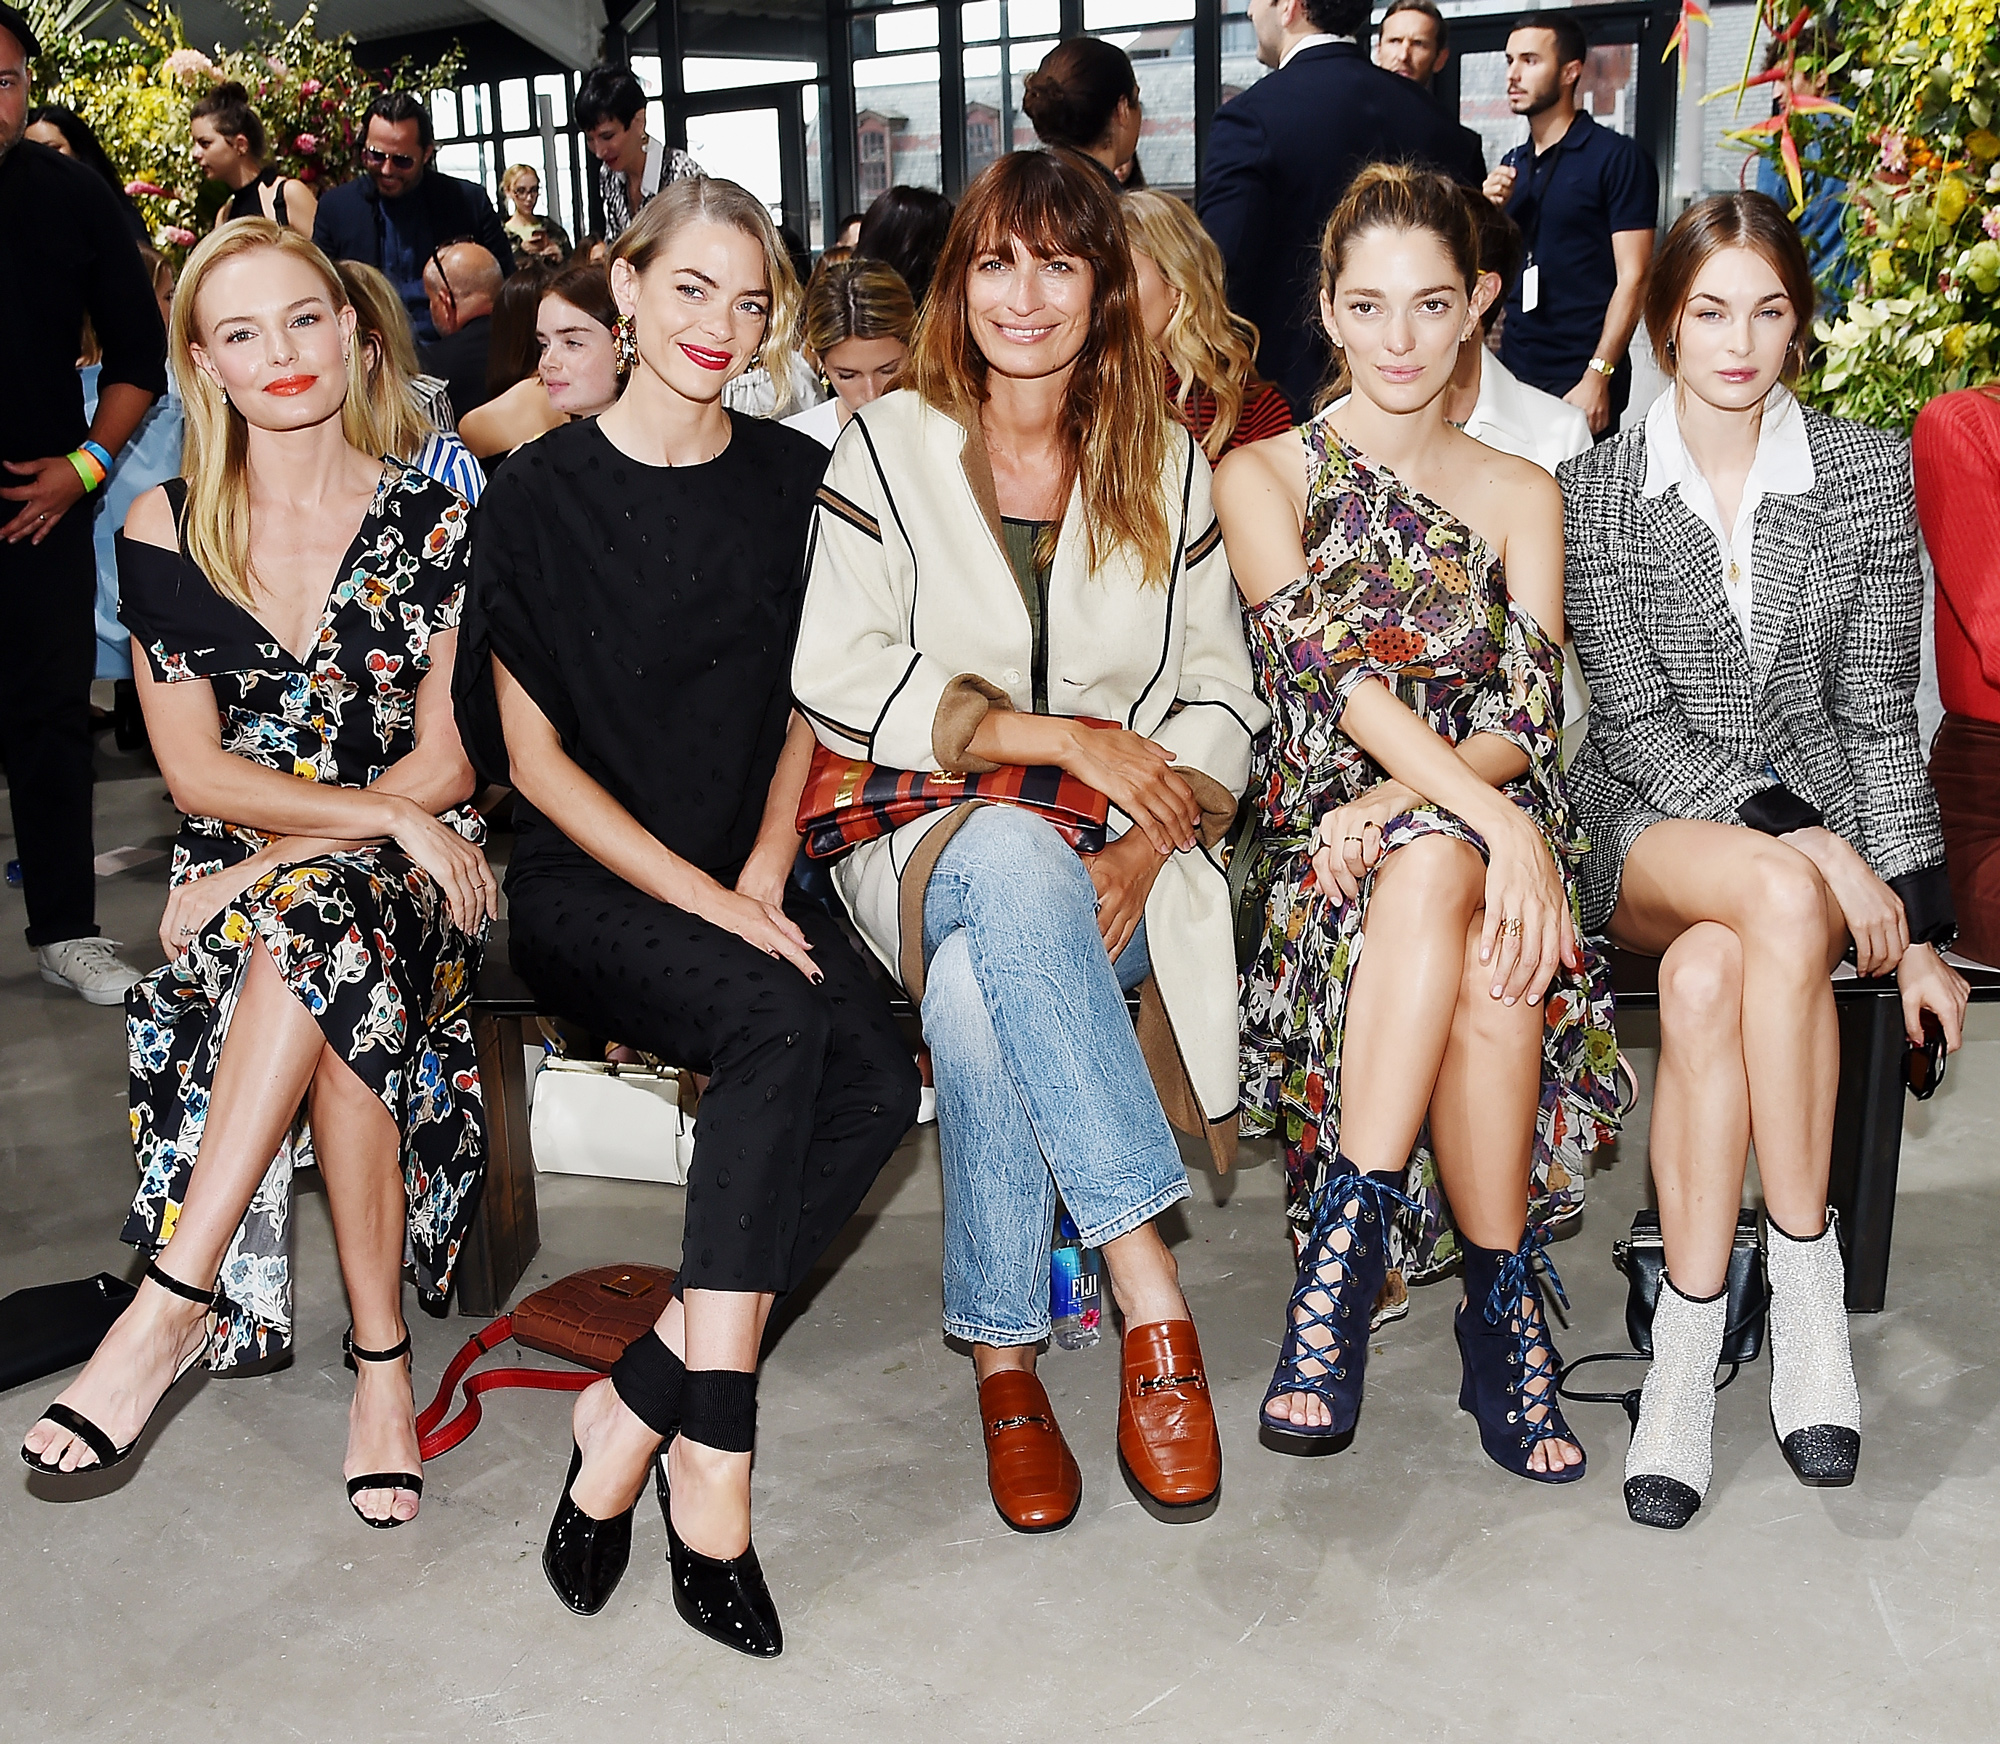 <p>Kate Bosworth, Jaime King, Caroline de Maigret, Sofía Sanchez de Betak, and Laura Love</p>